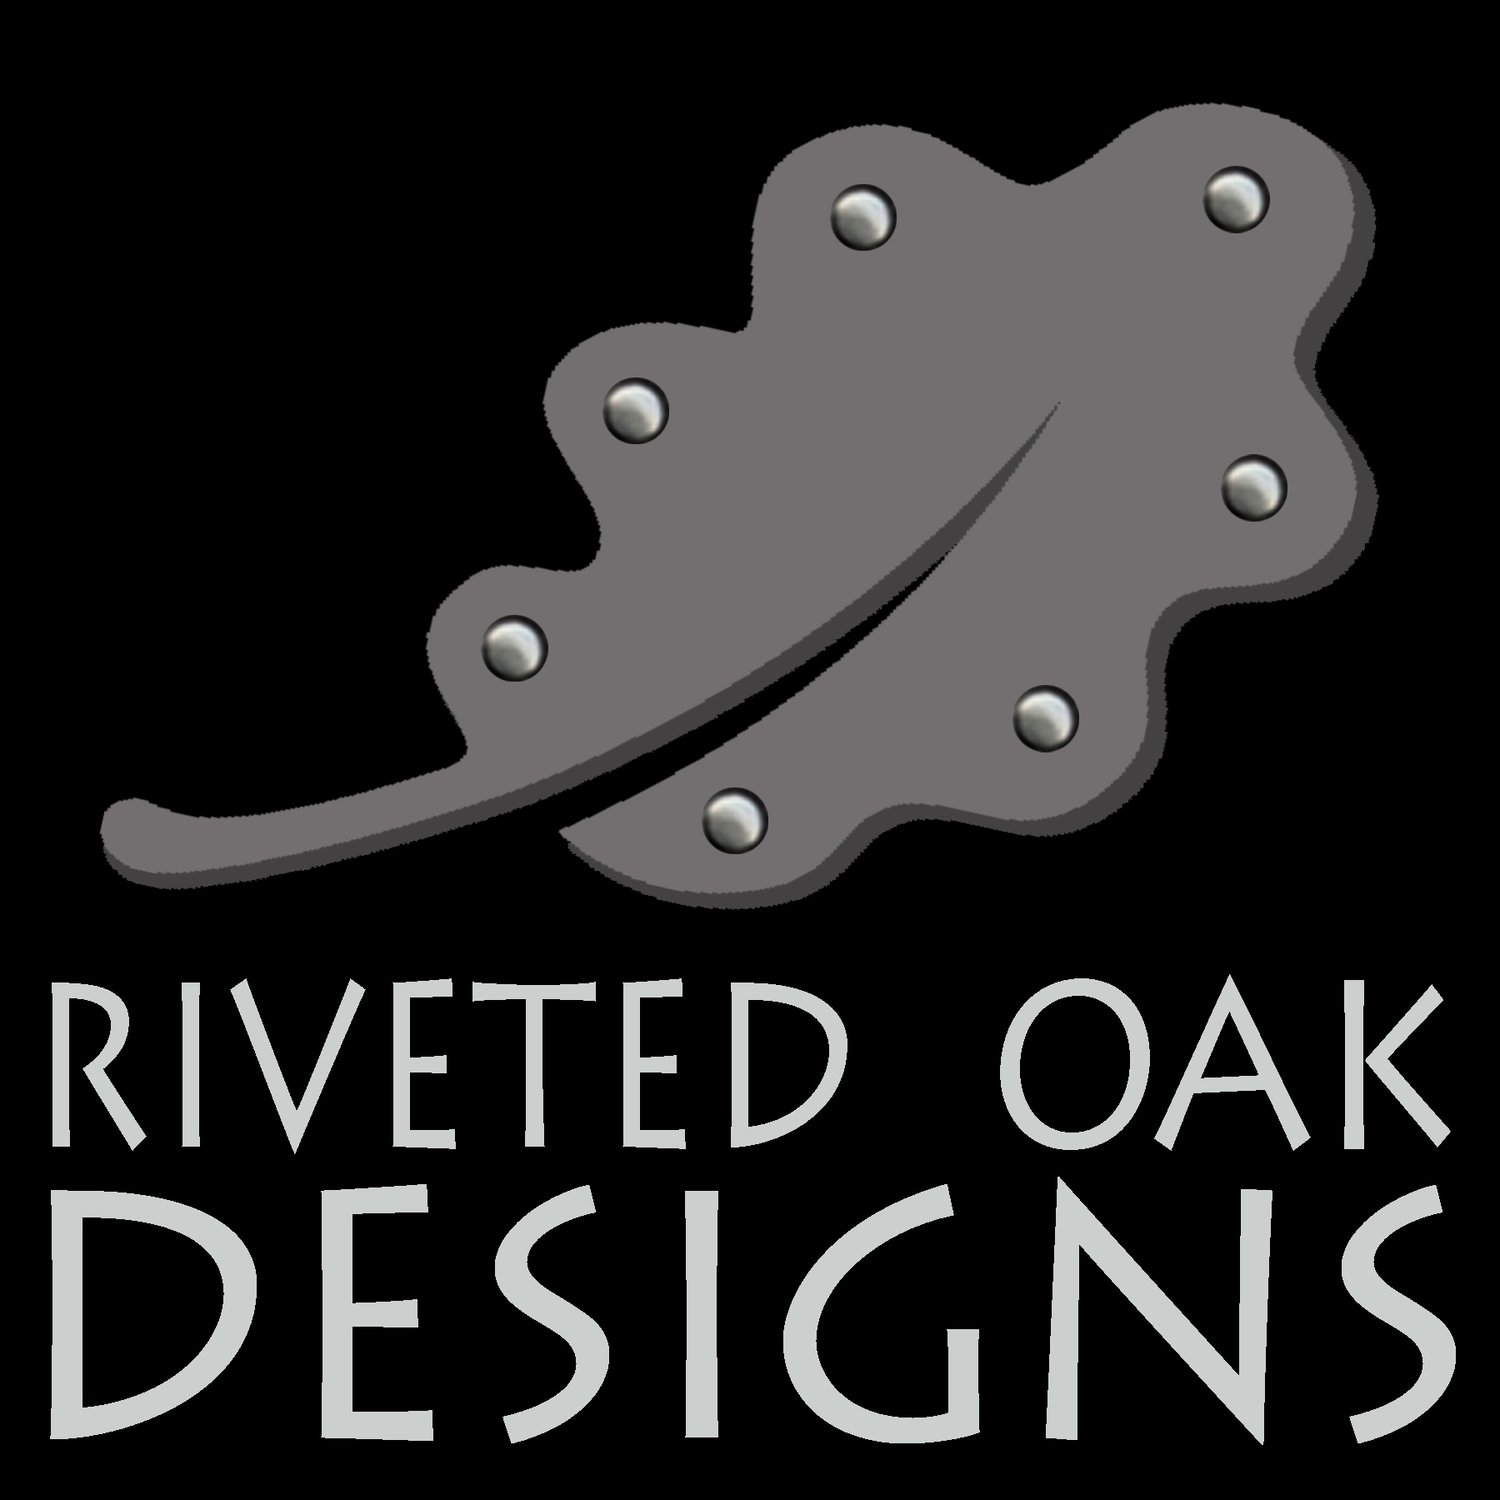 Riveted Oak Designs